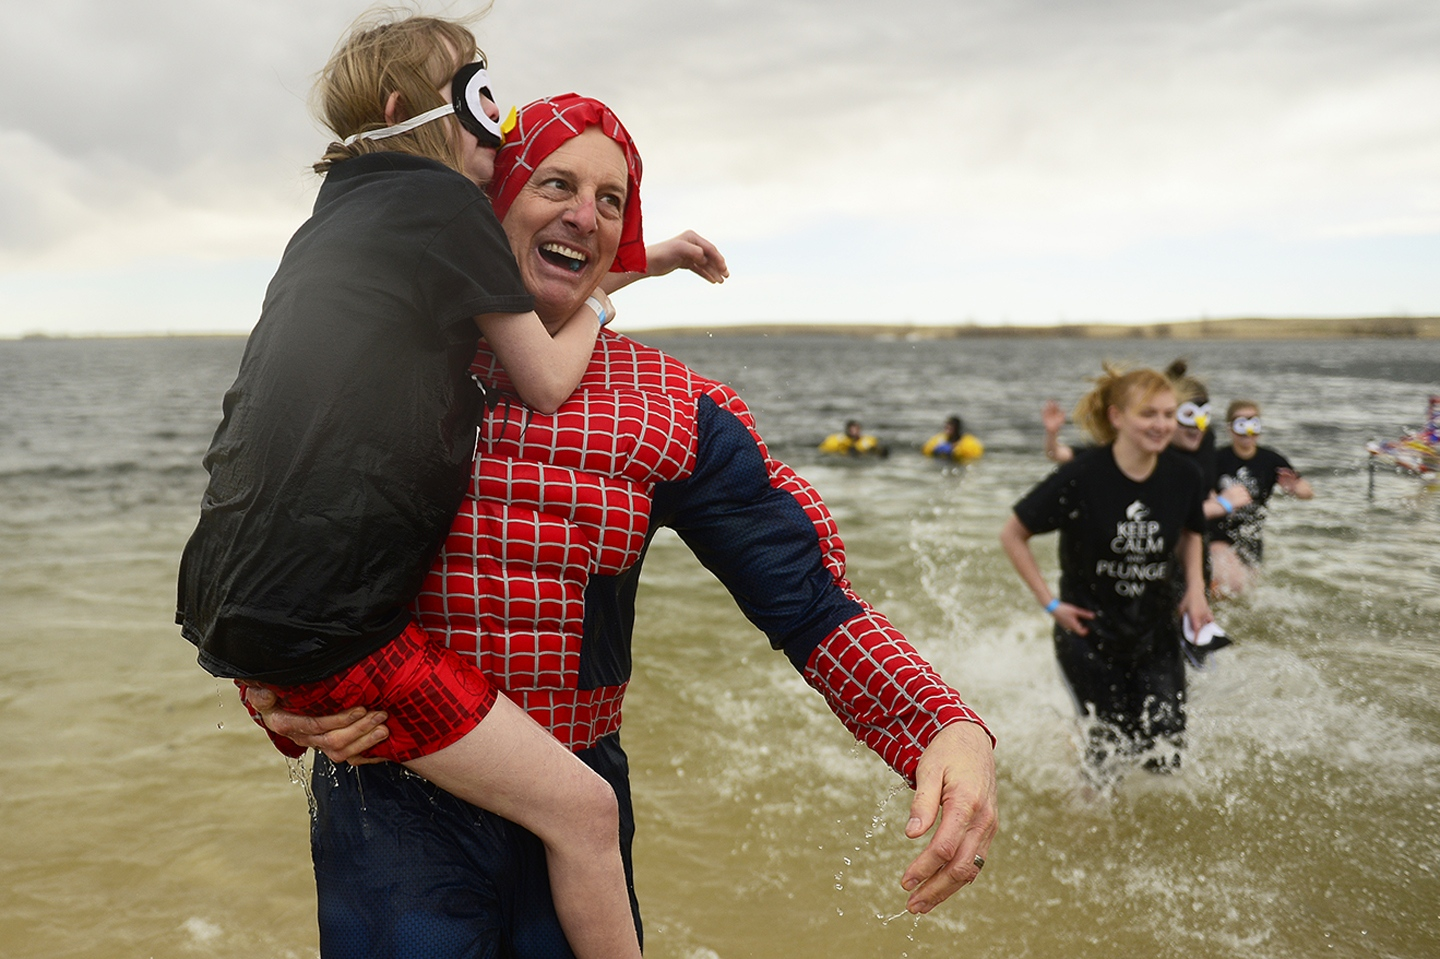 2016 Polar Plunge Raises Money and Awareness For Special Olympics Bill McIntosh holds Hannah Hall, 16, after taking the plunge during the 2016 Polar Plunge at the Aurora Reservoir on February 20, 2016 in Aurora, Colorado. Hundreds of people showed up for the annual event dressed in costumes, looking forward to take a dip in the 36 degrees reservoir to support Special Olympics Colorado. (Photo by Brent Lewis/The Denver Post)